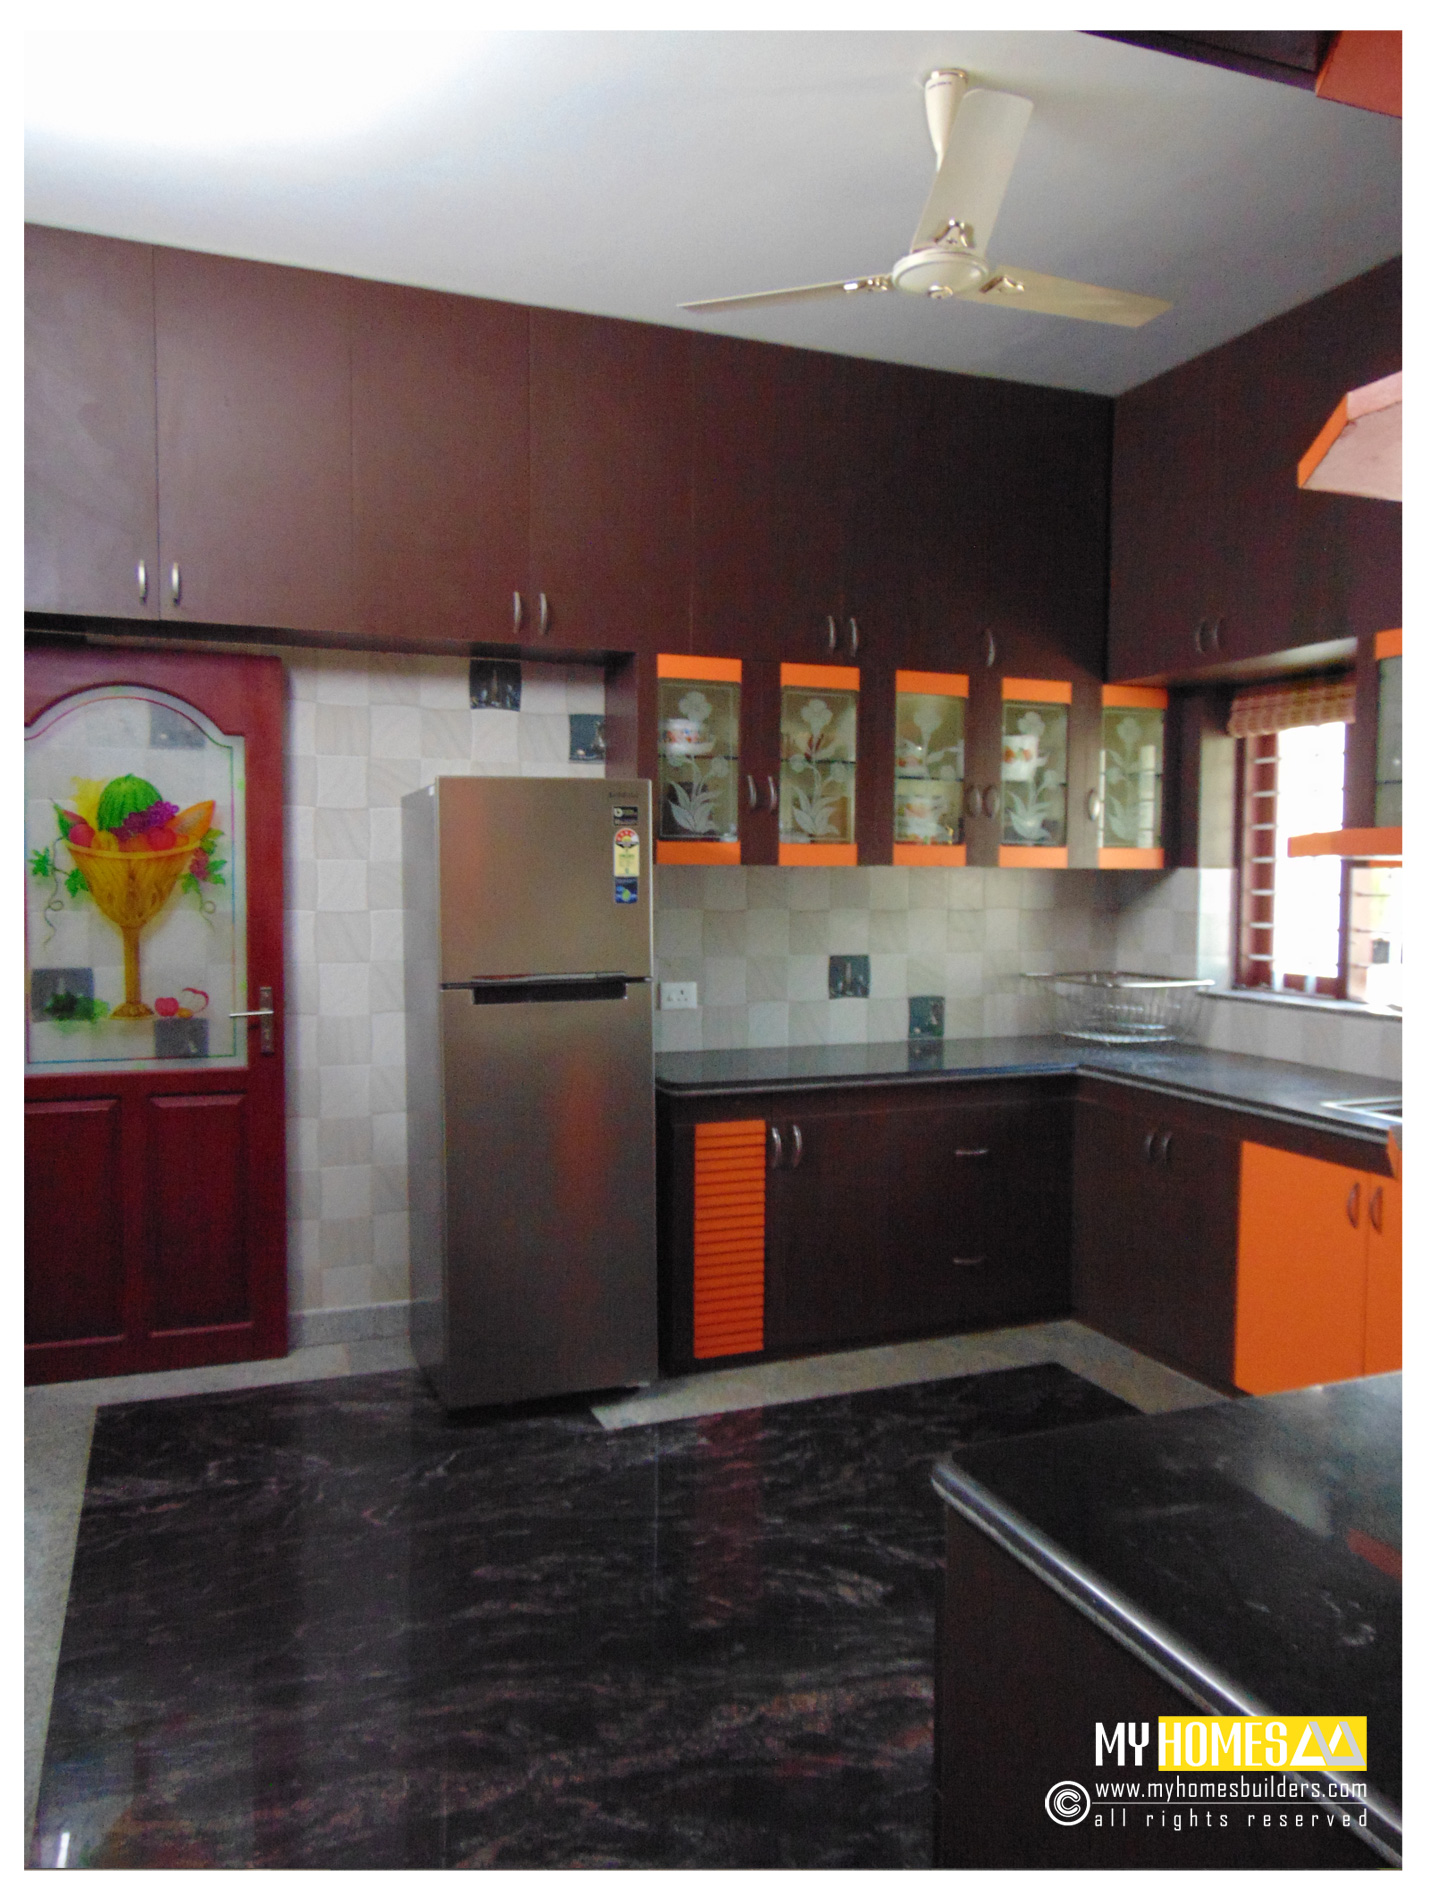 Kerala Kitchen Designs Idea In Modular Style For House